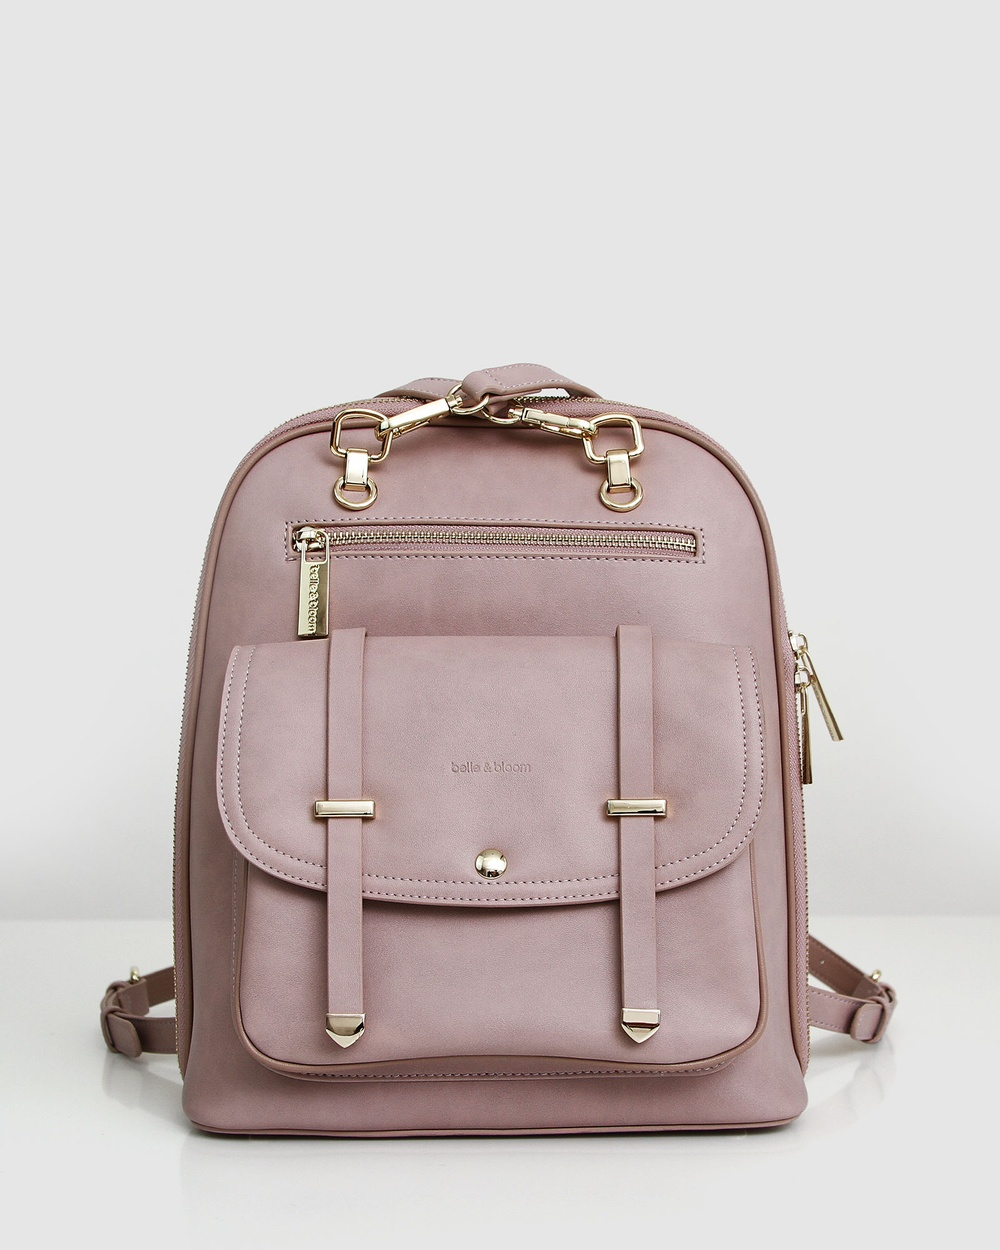 Belle & Bloom 5th Ave Leather Backpack Backpacks Pink Leather bags Australia